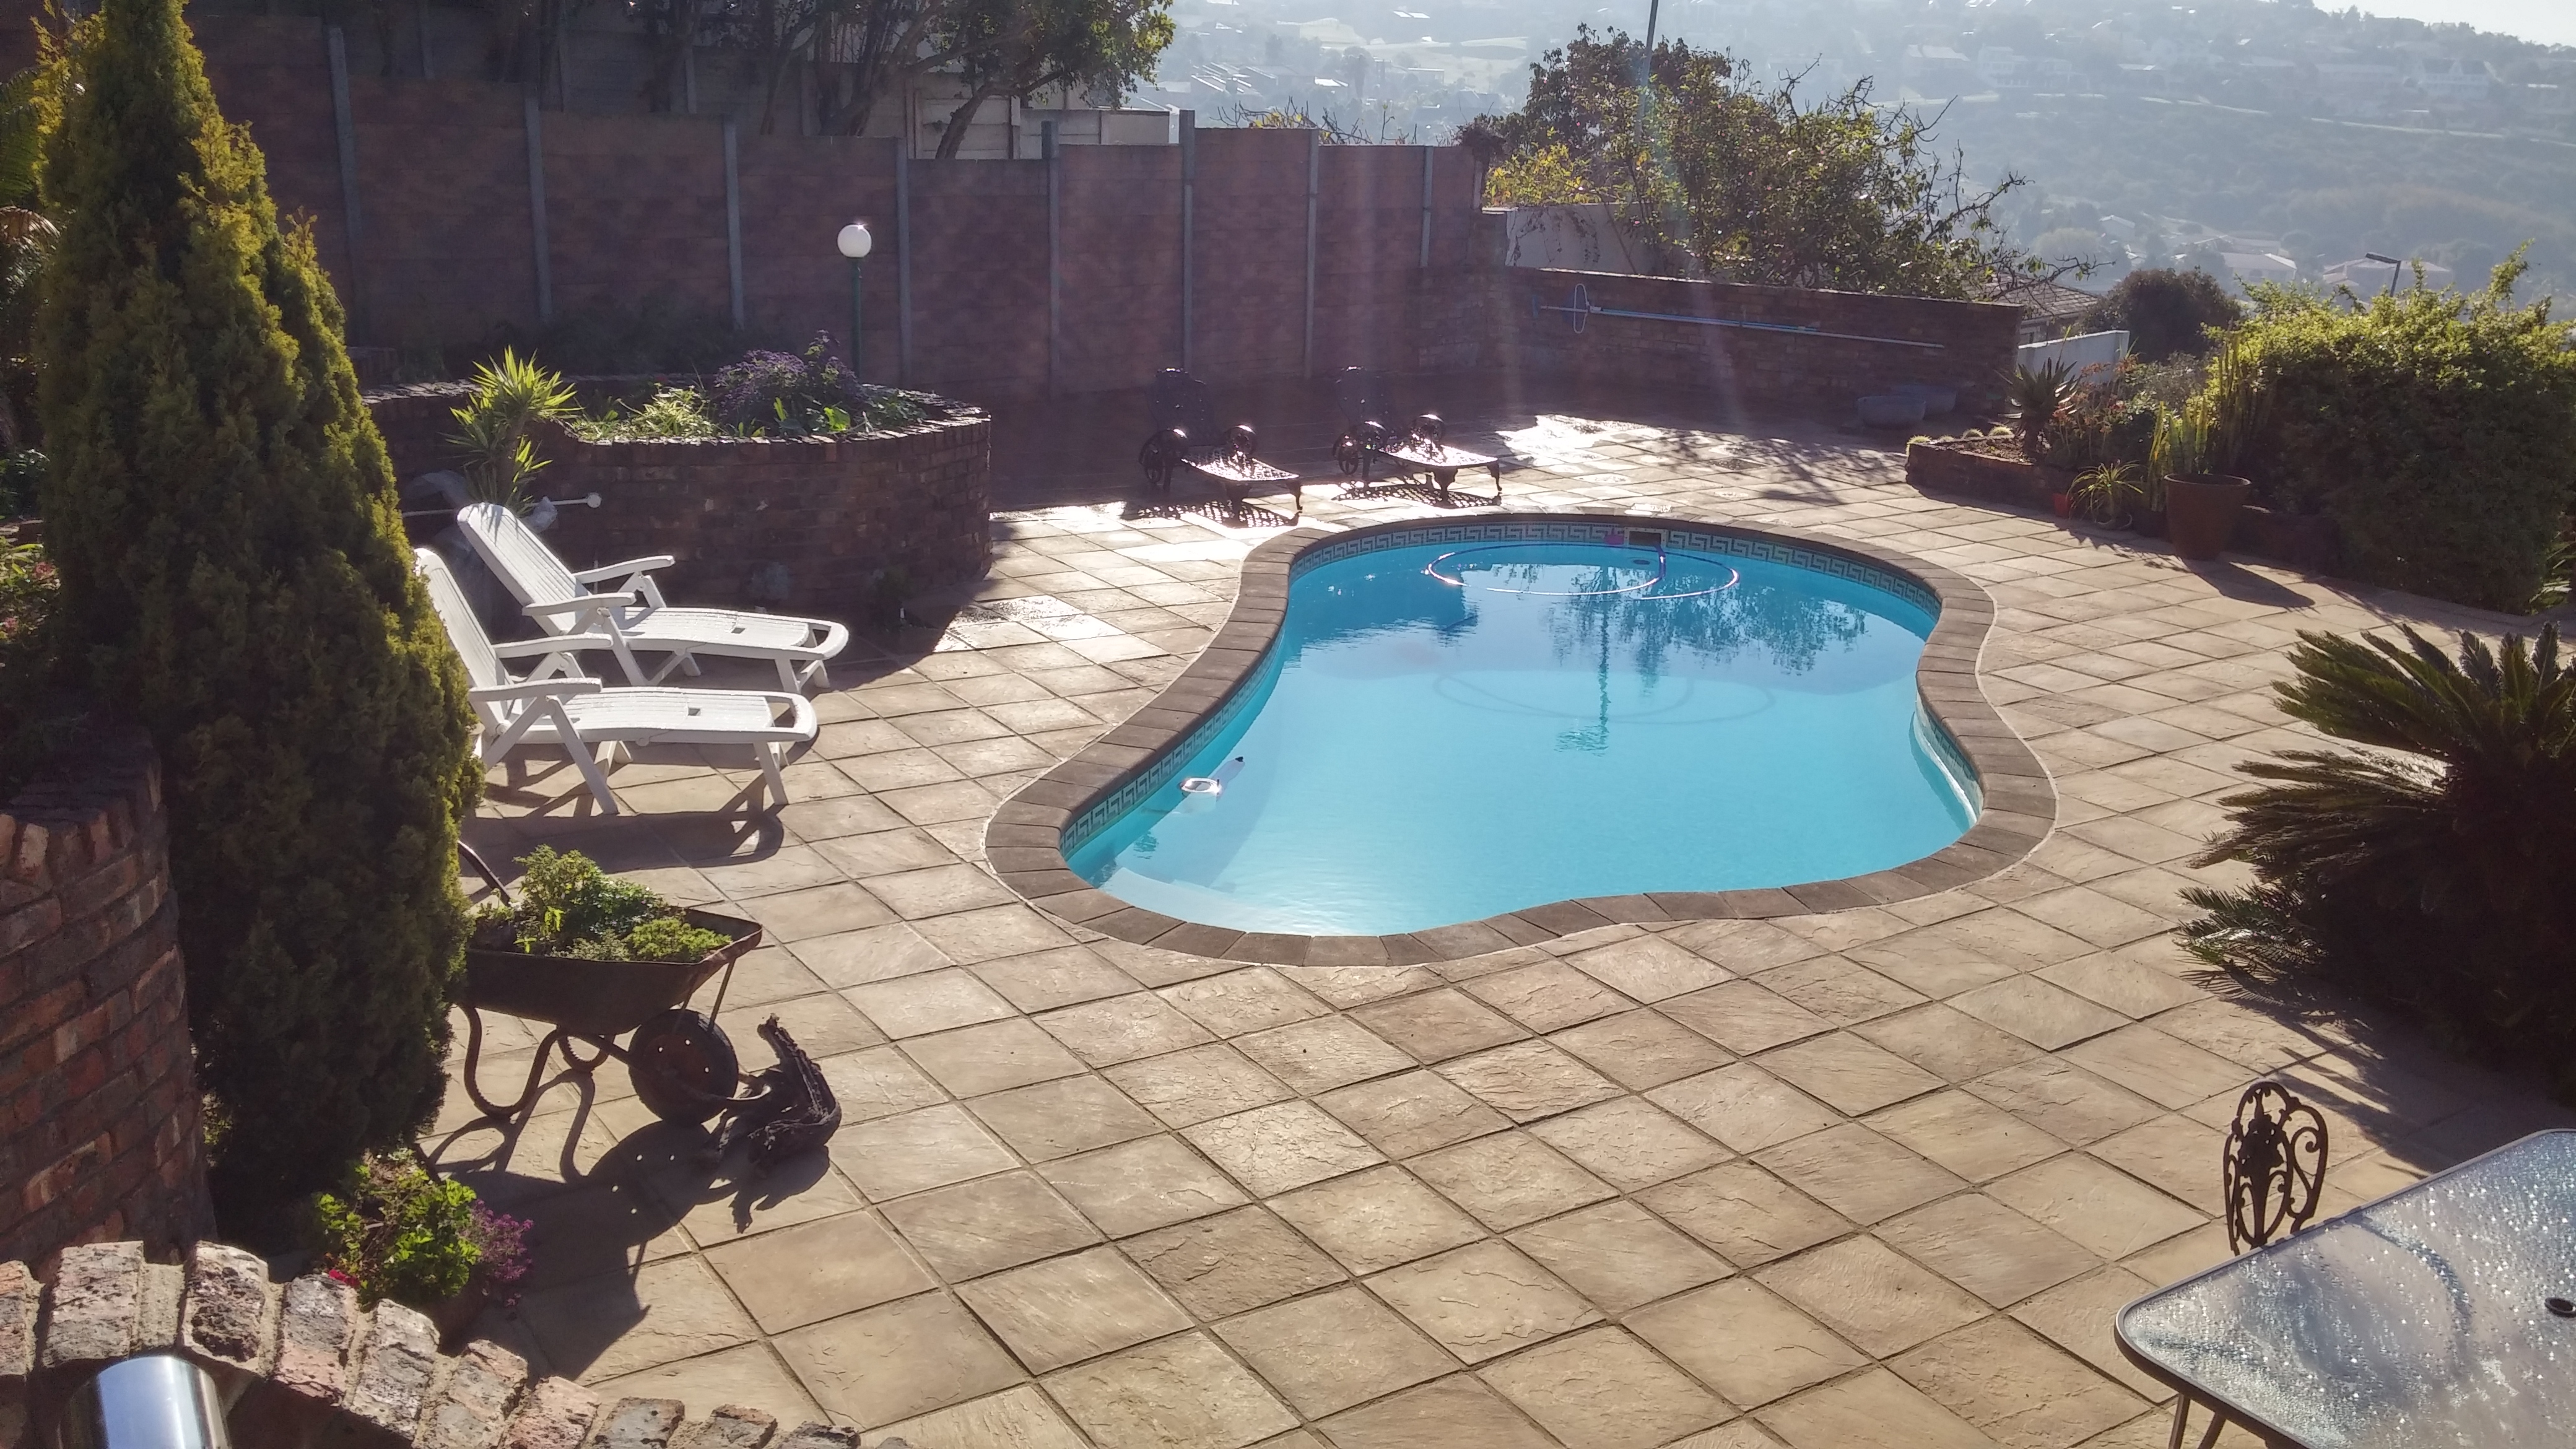 Pool-Paving-440-Pavers-with-Shurfoot-Coping.jpg